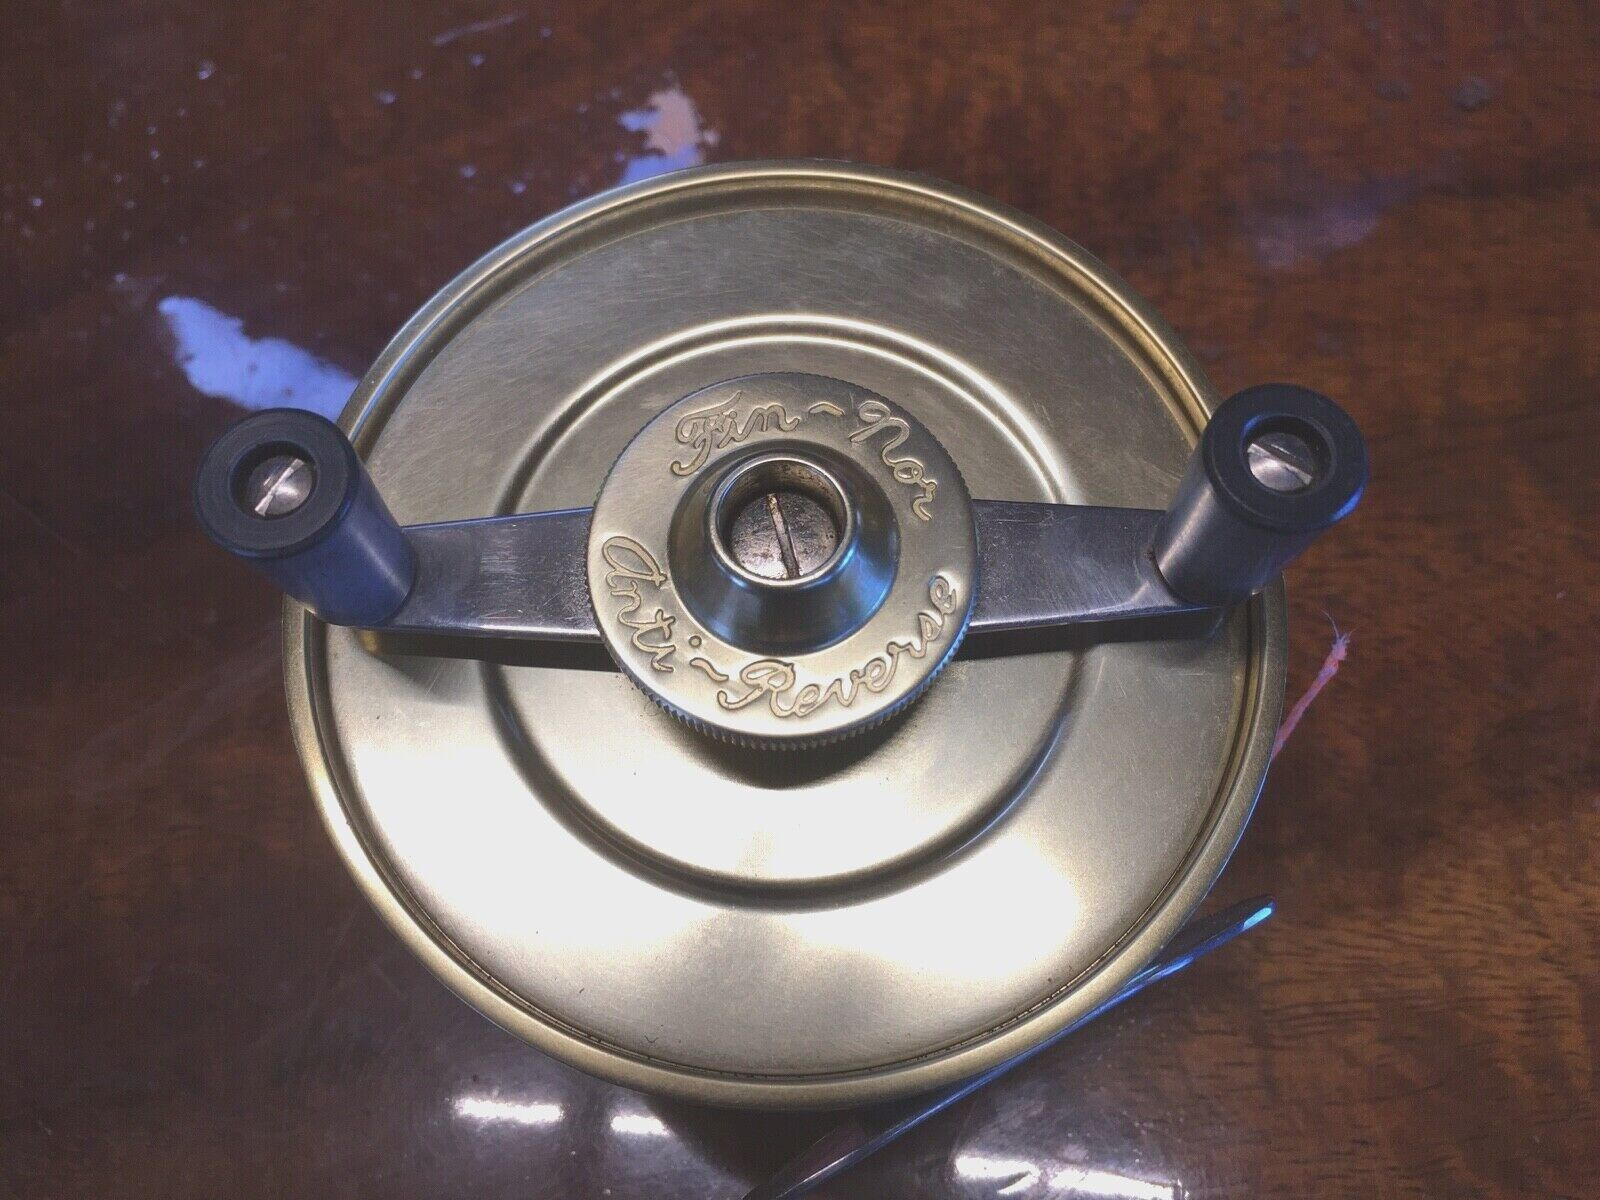 classeic Fin Nor  4 AntiReverse Fly Reel in Original scatola  OldSchool Quality.